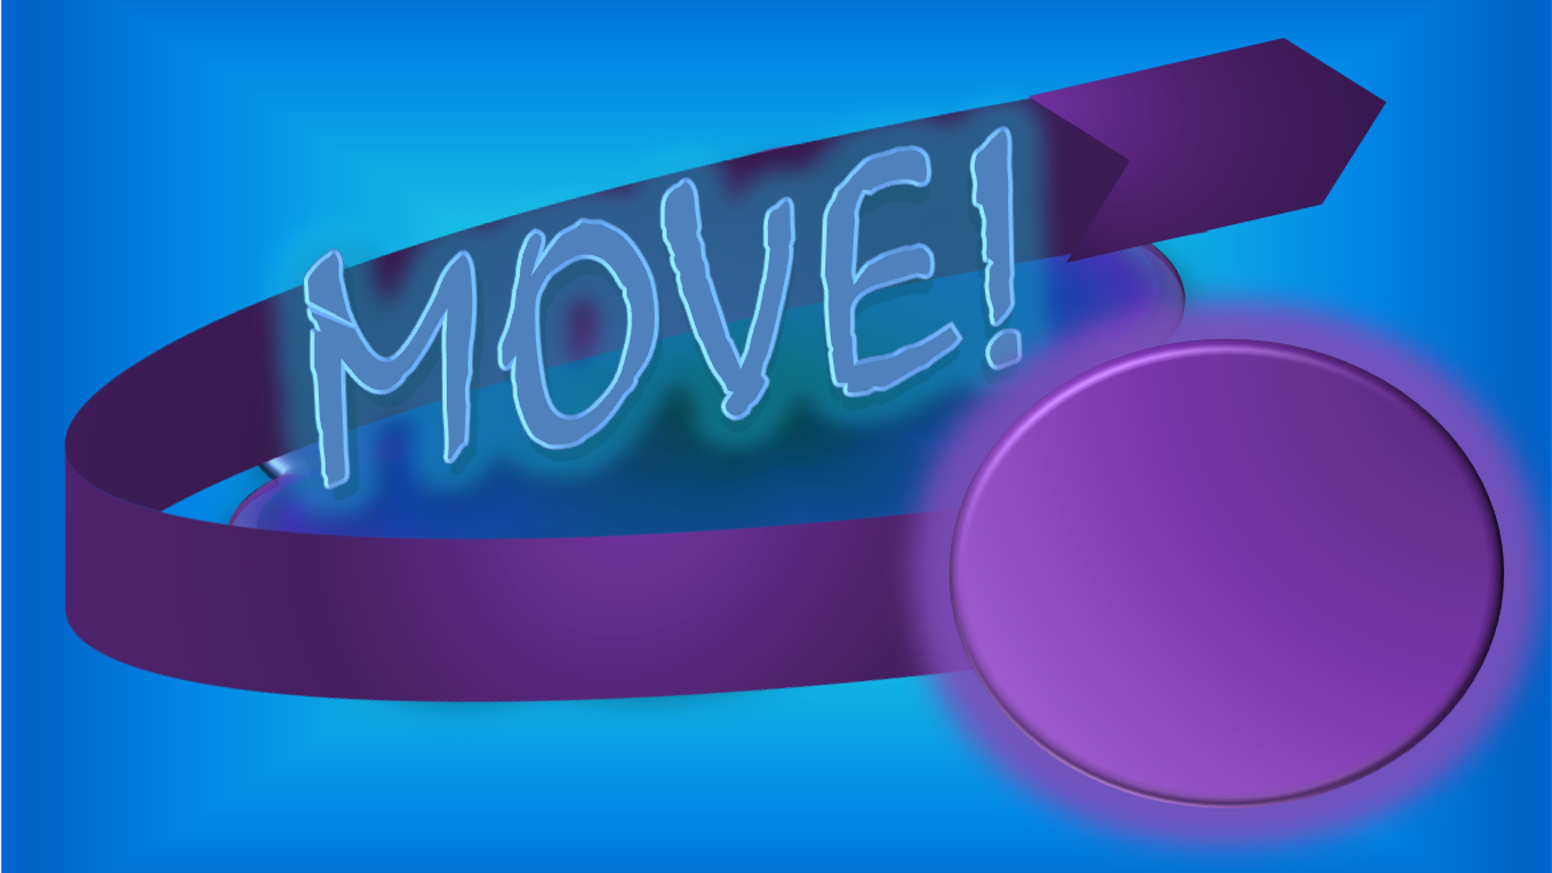 MOVE! a Simple Yet Fun and Addictive Mobile Video Game! by Leaf